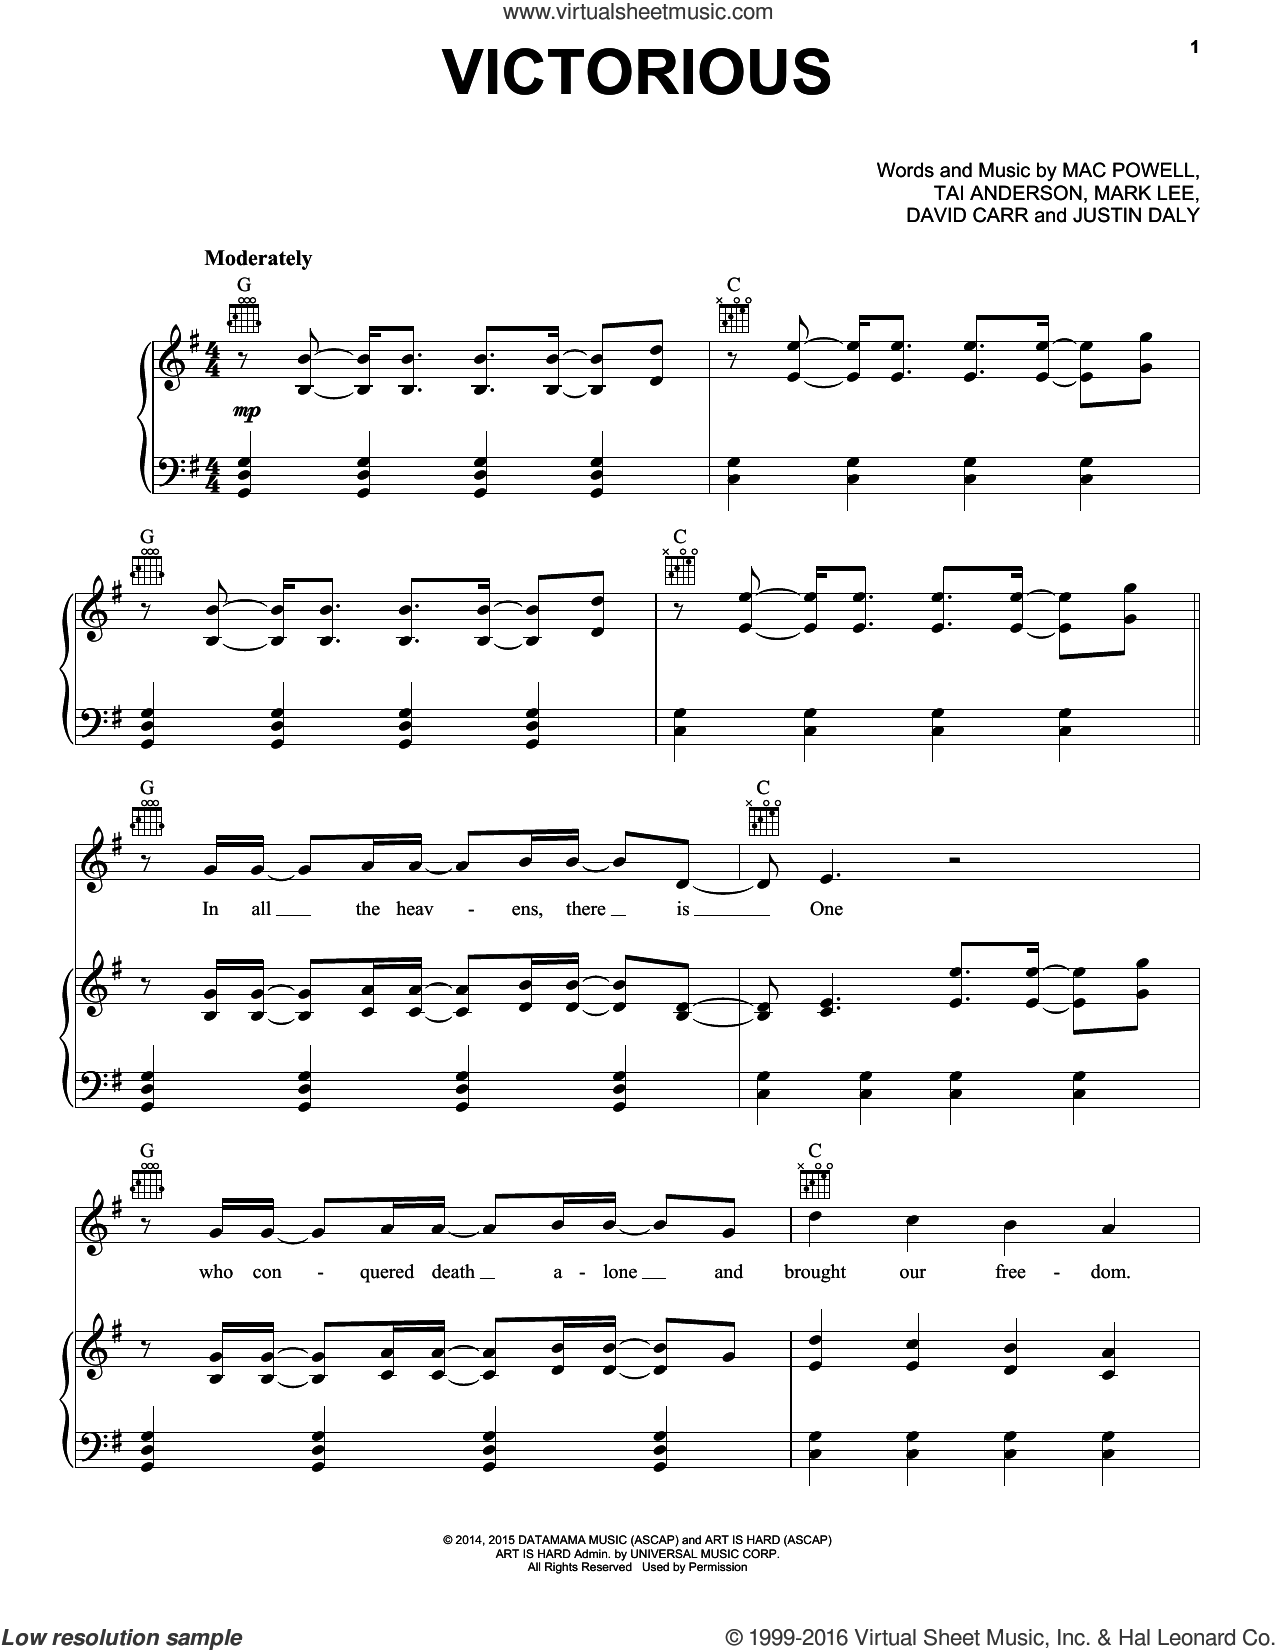 Victorious sheet music for voice, piano or guitar by Tai Anderson